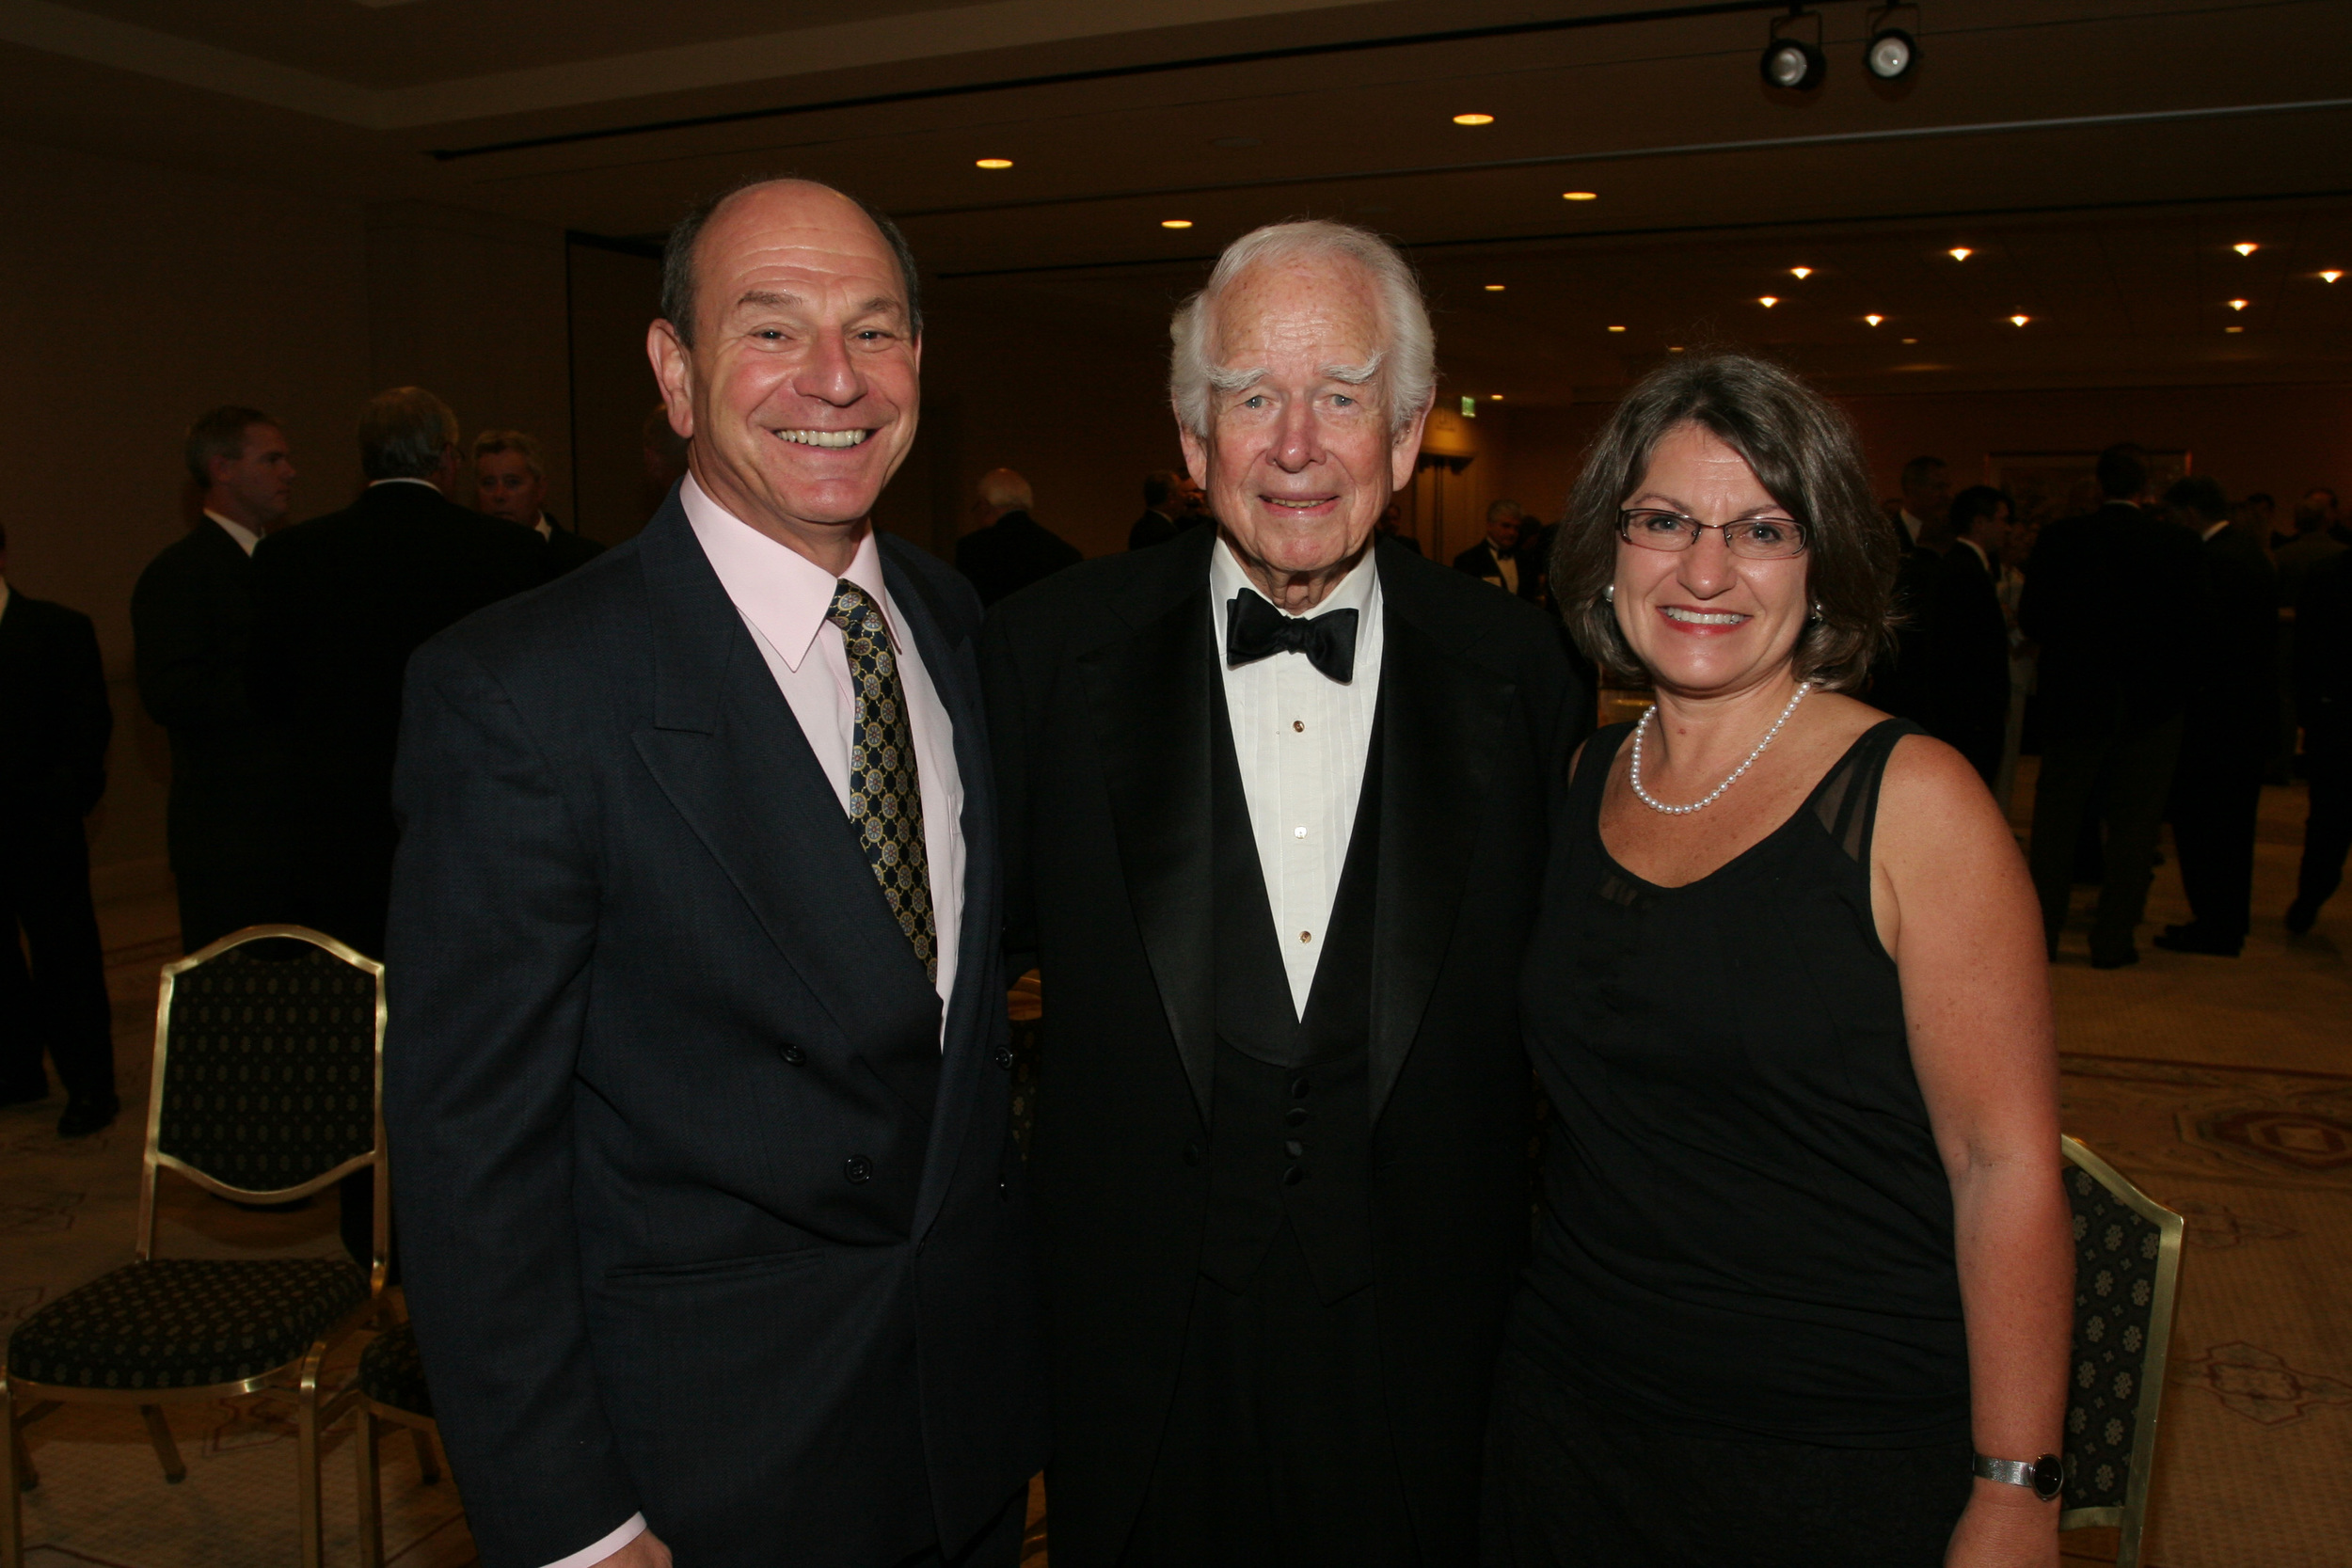 Pat Weinstein, Don Kendall (former CEO of Pepsi Cola), and Susan Landon at the annual Bottler of the Year nominations ceremony.